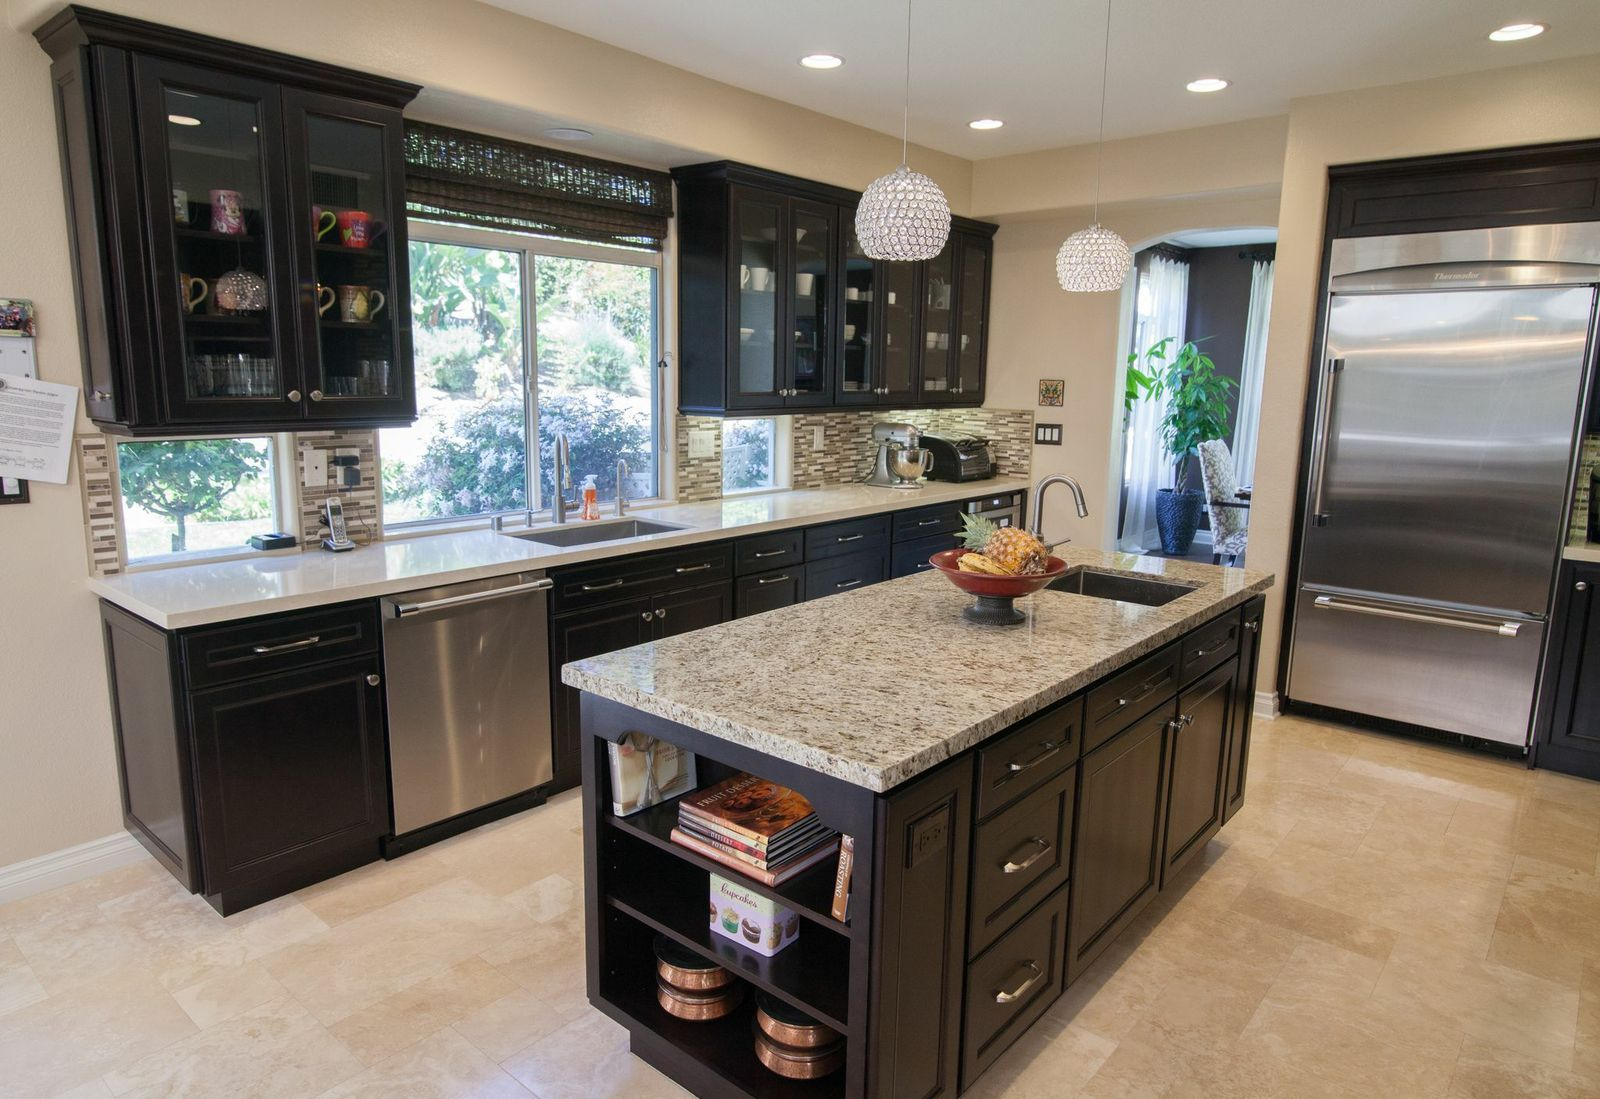 Kitchensetc Of Ventura County Kitchen Kitchen Remodel Kitchen Design